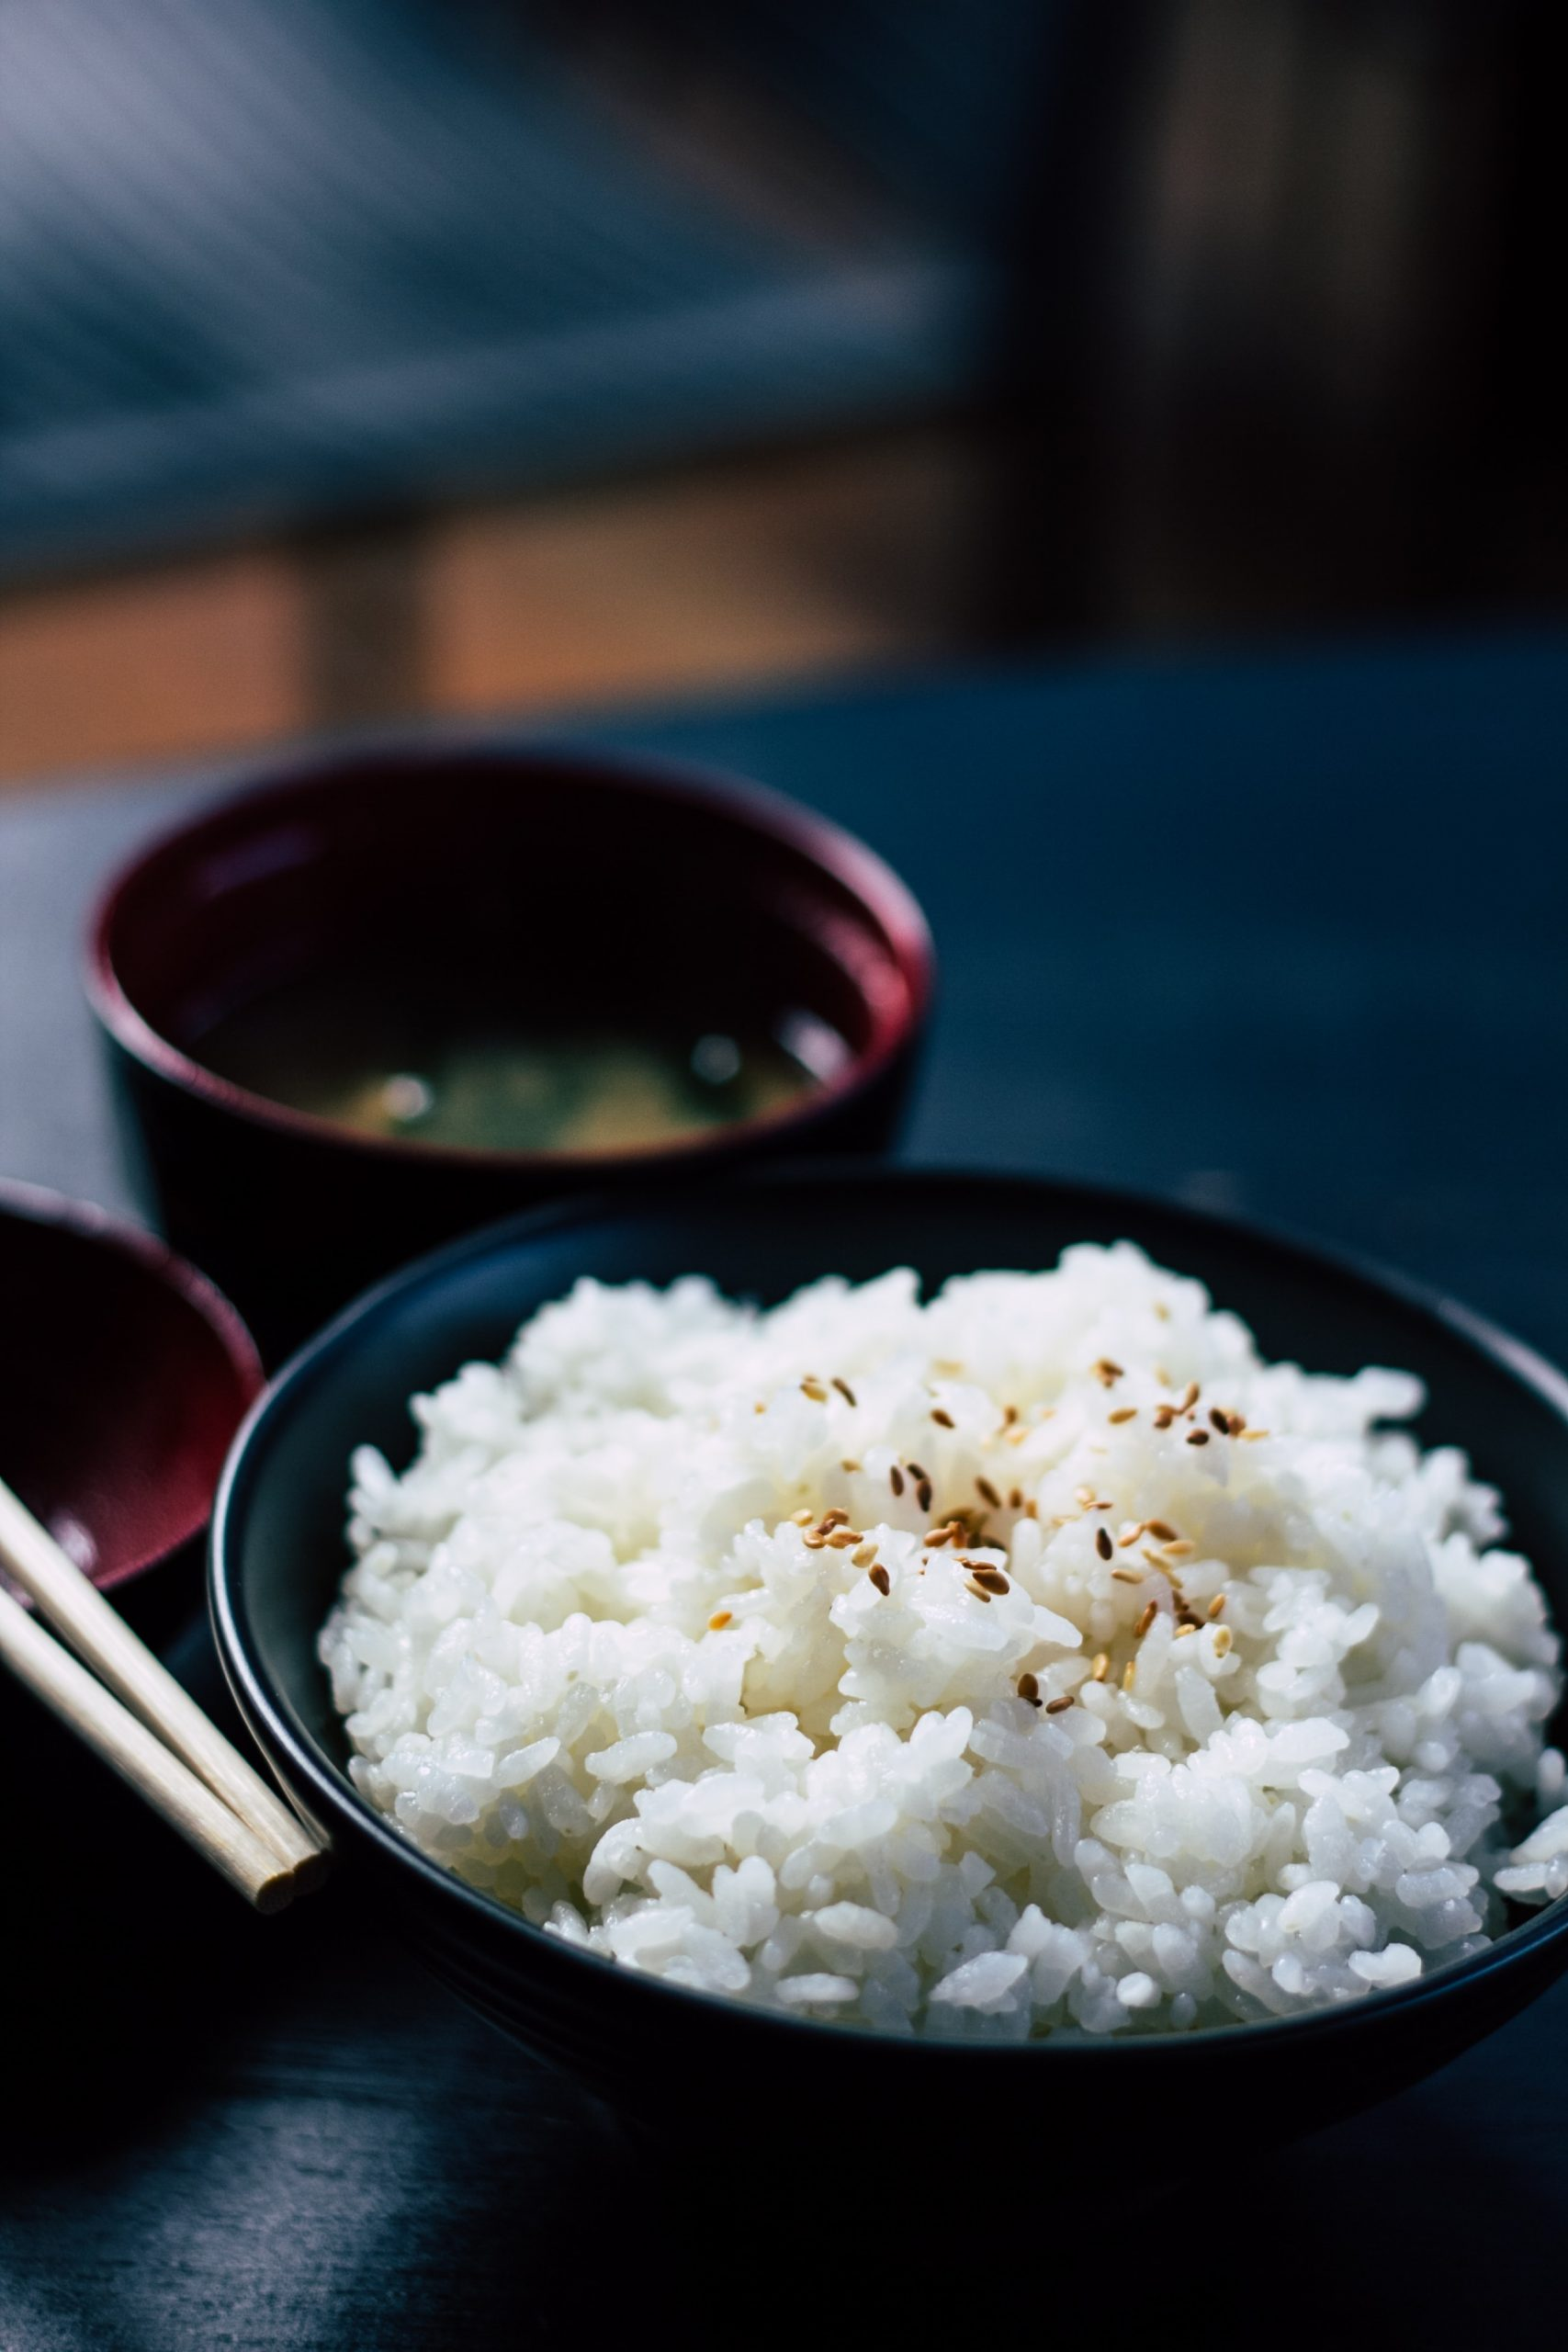 How Much Water For 2 Cups of Rice? The Scientifically Accurate Answer